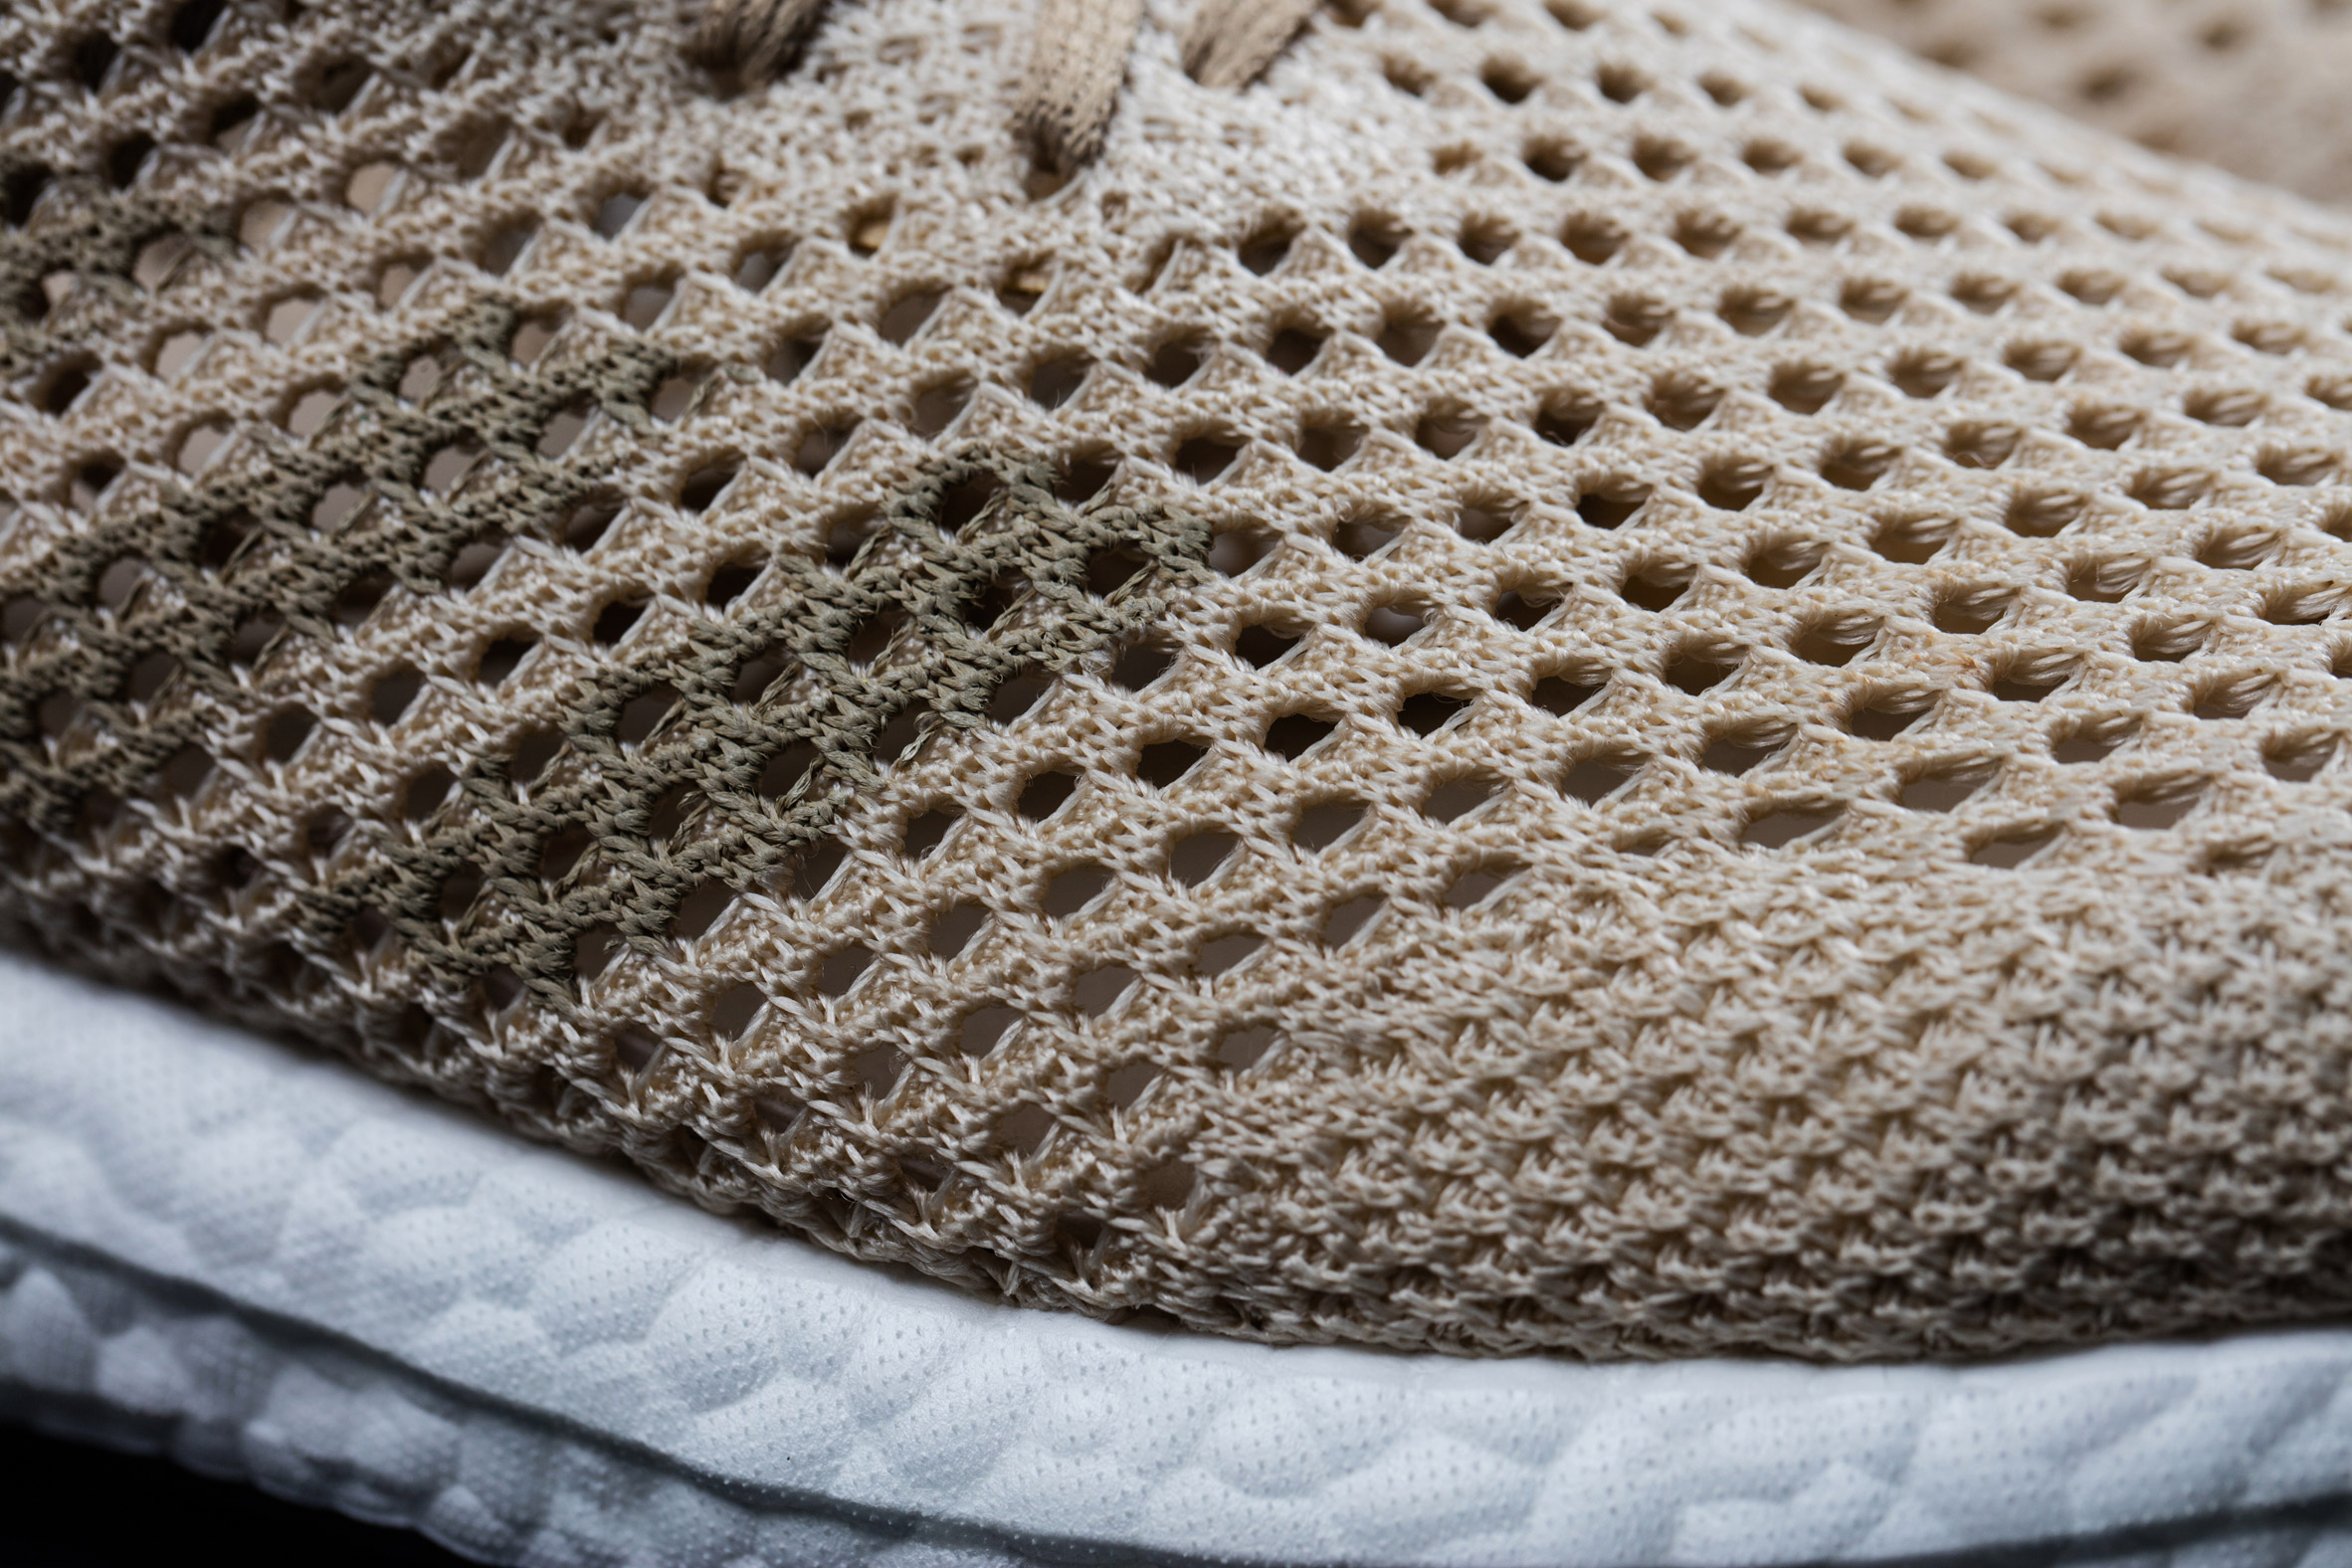 premium selection 0afb7 b5d86 adidas-biosteel-trainers-biodegradable-fabric-shoes-fashion-design-